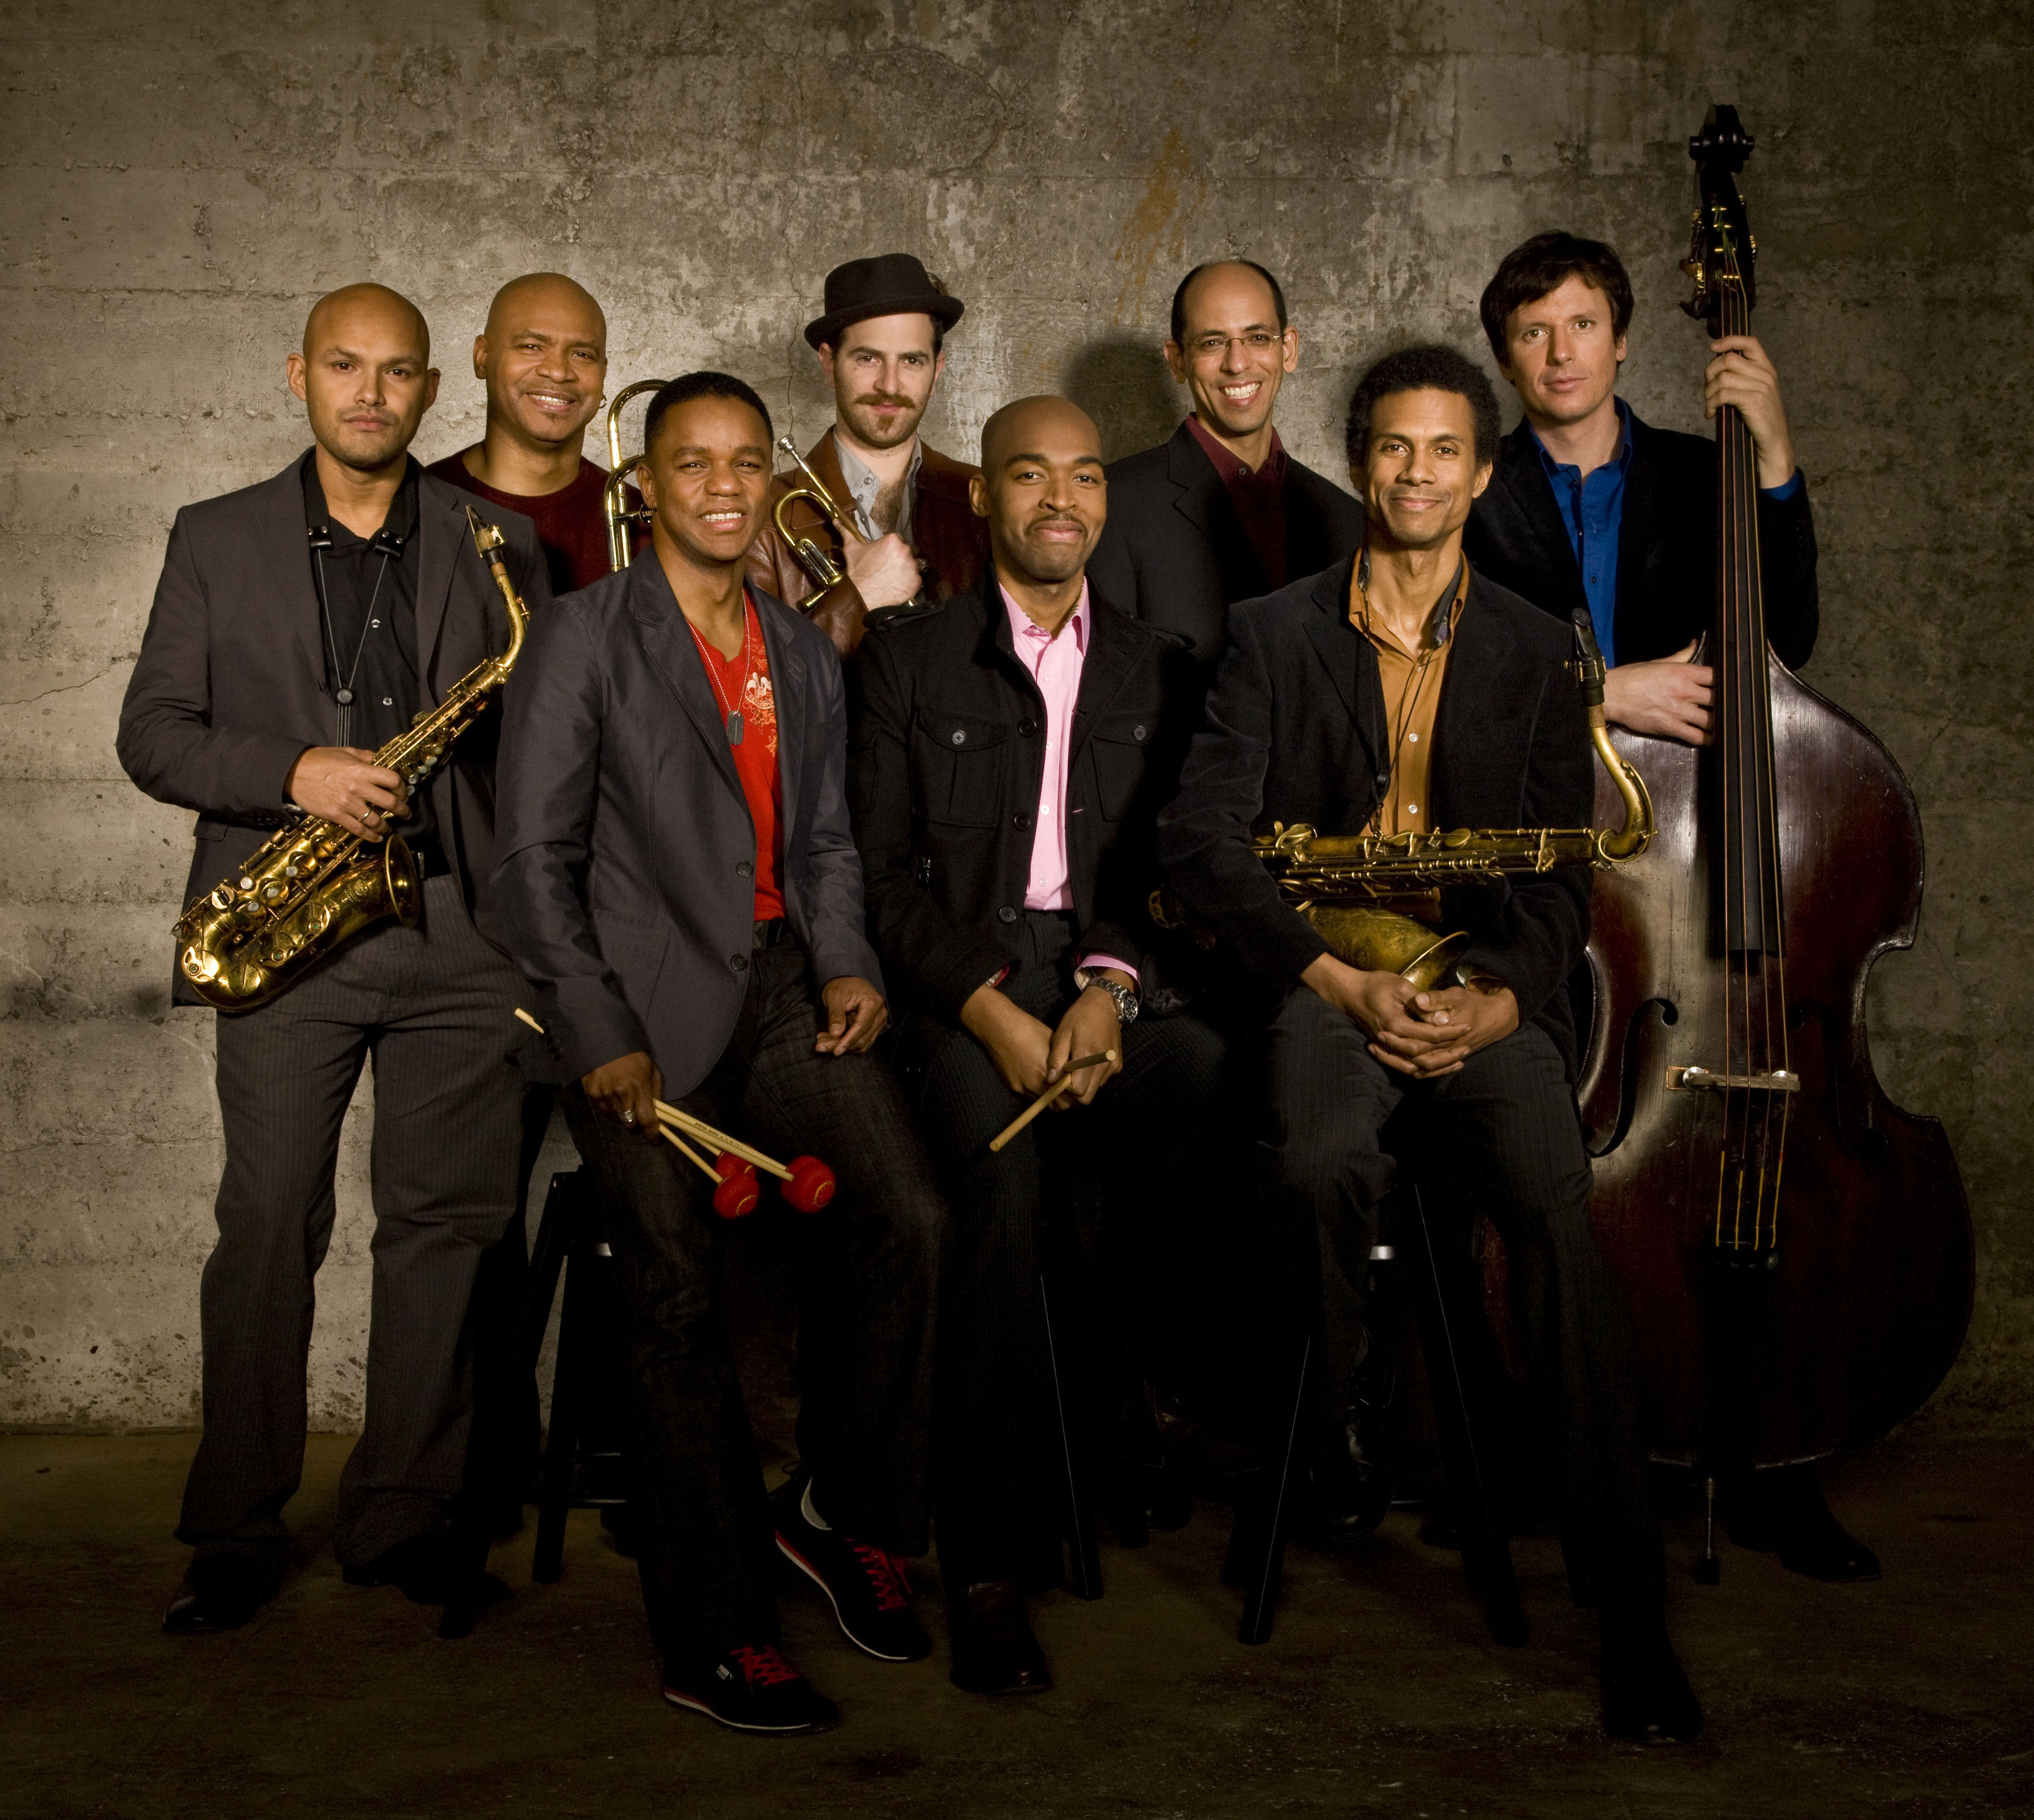 © SFJAZZ. All Rights Reserved.